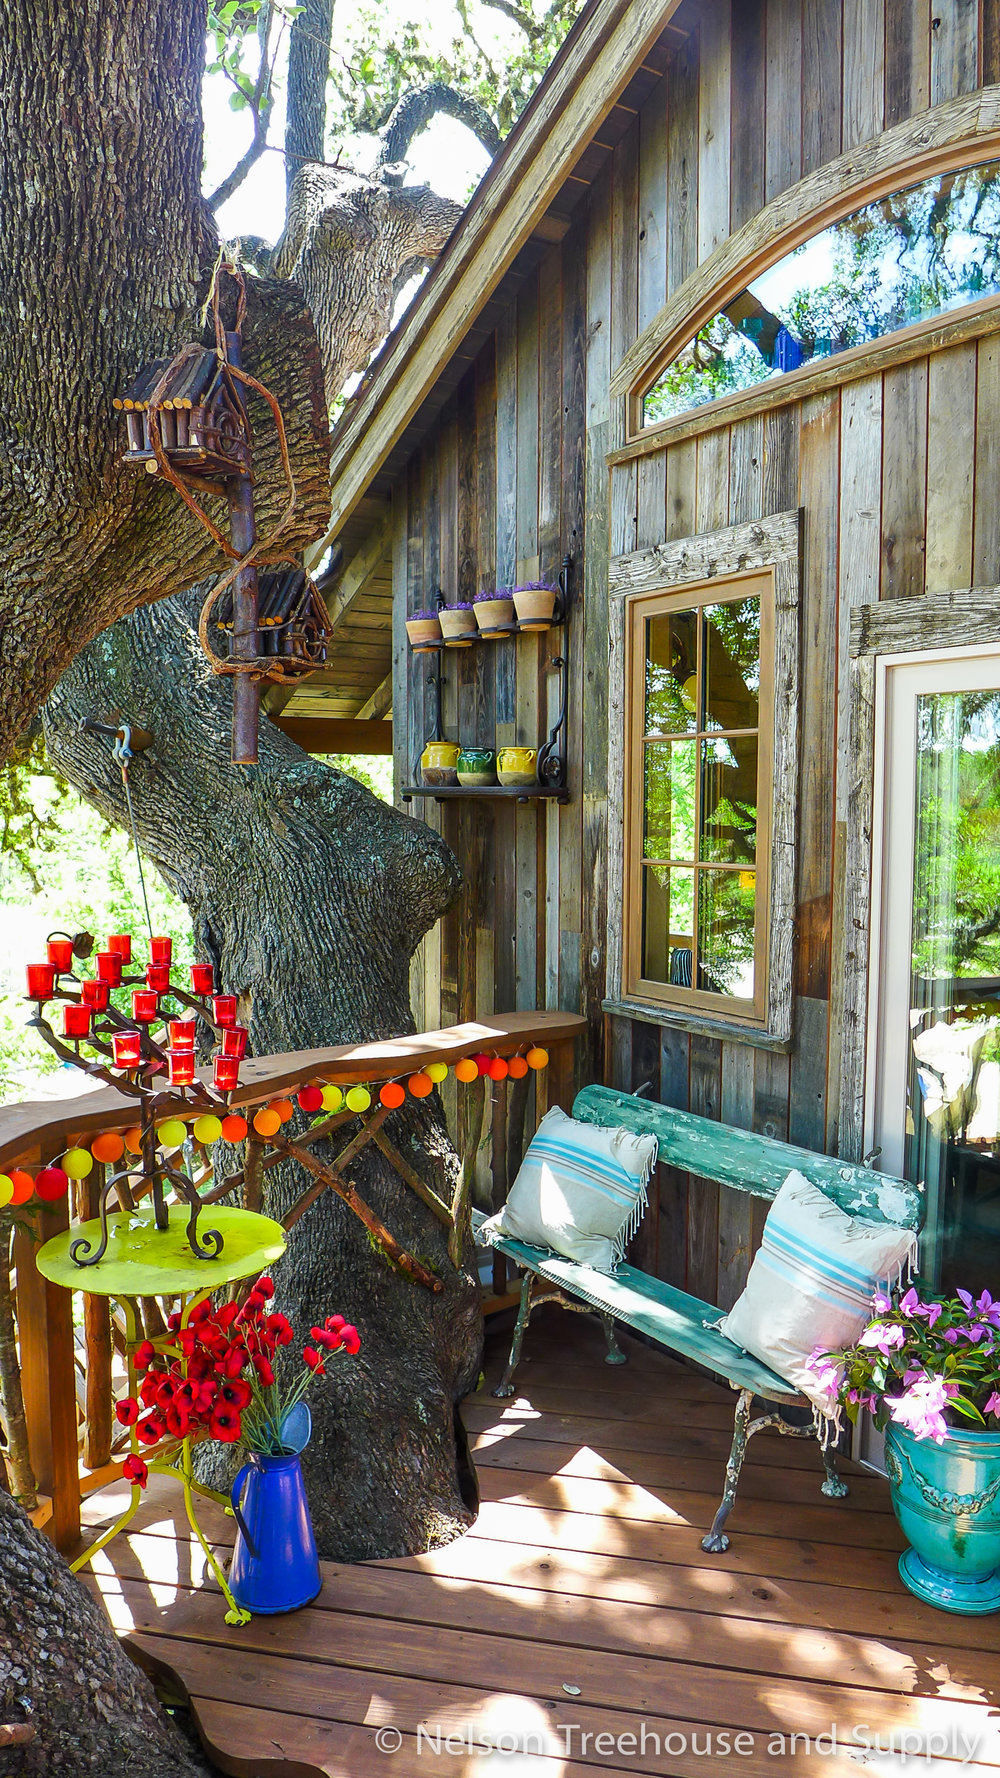 laurel-restaurant-treehouse-deck